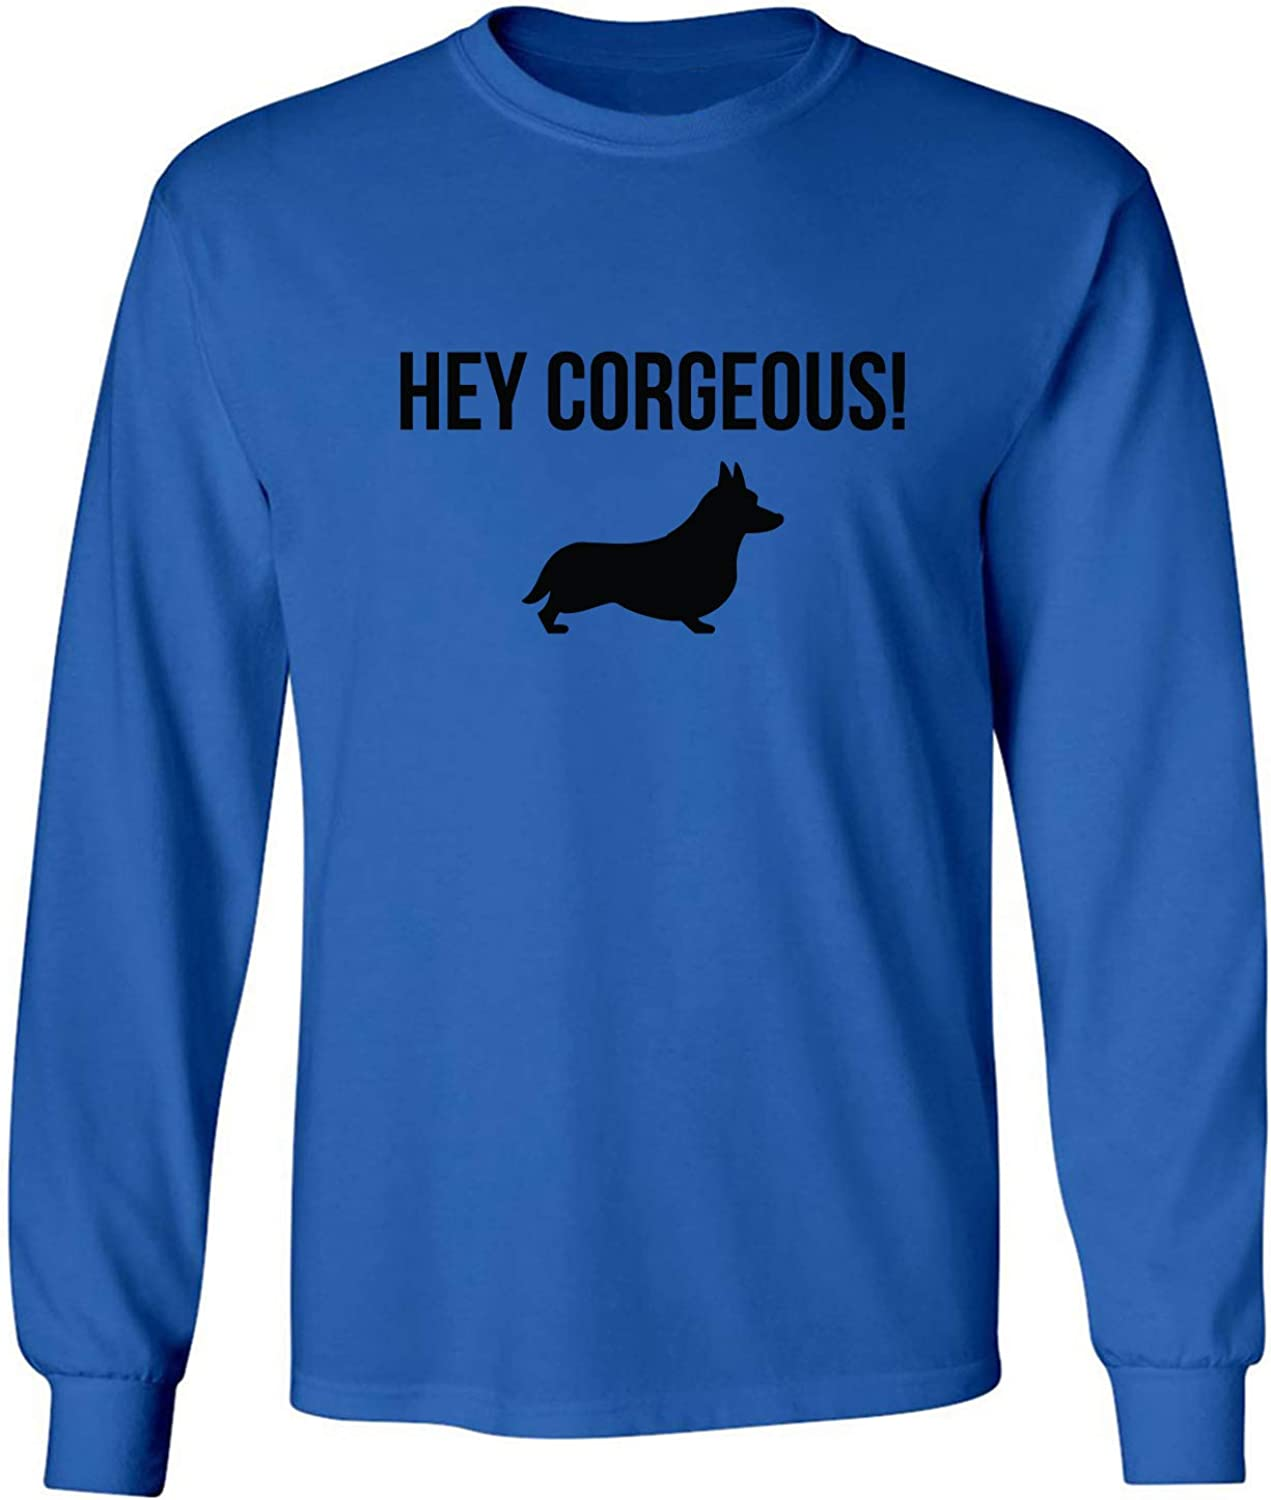 Hey Corgeous! Adult Long Sleeve T-Shirt in Royal - XXXXX-Large